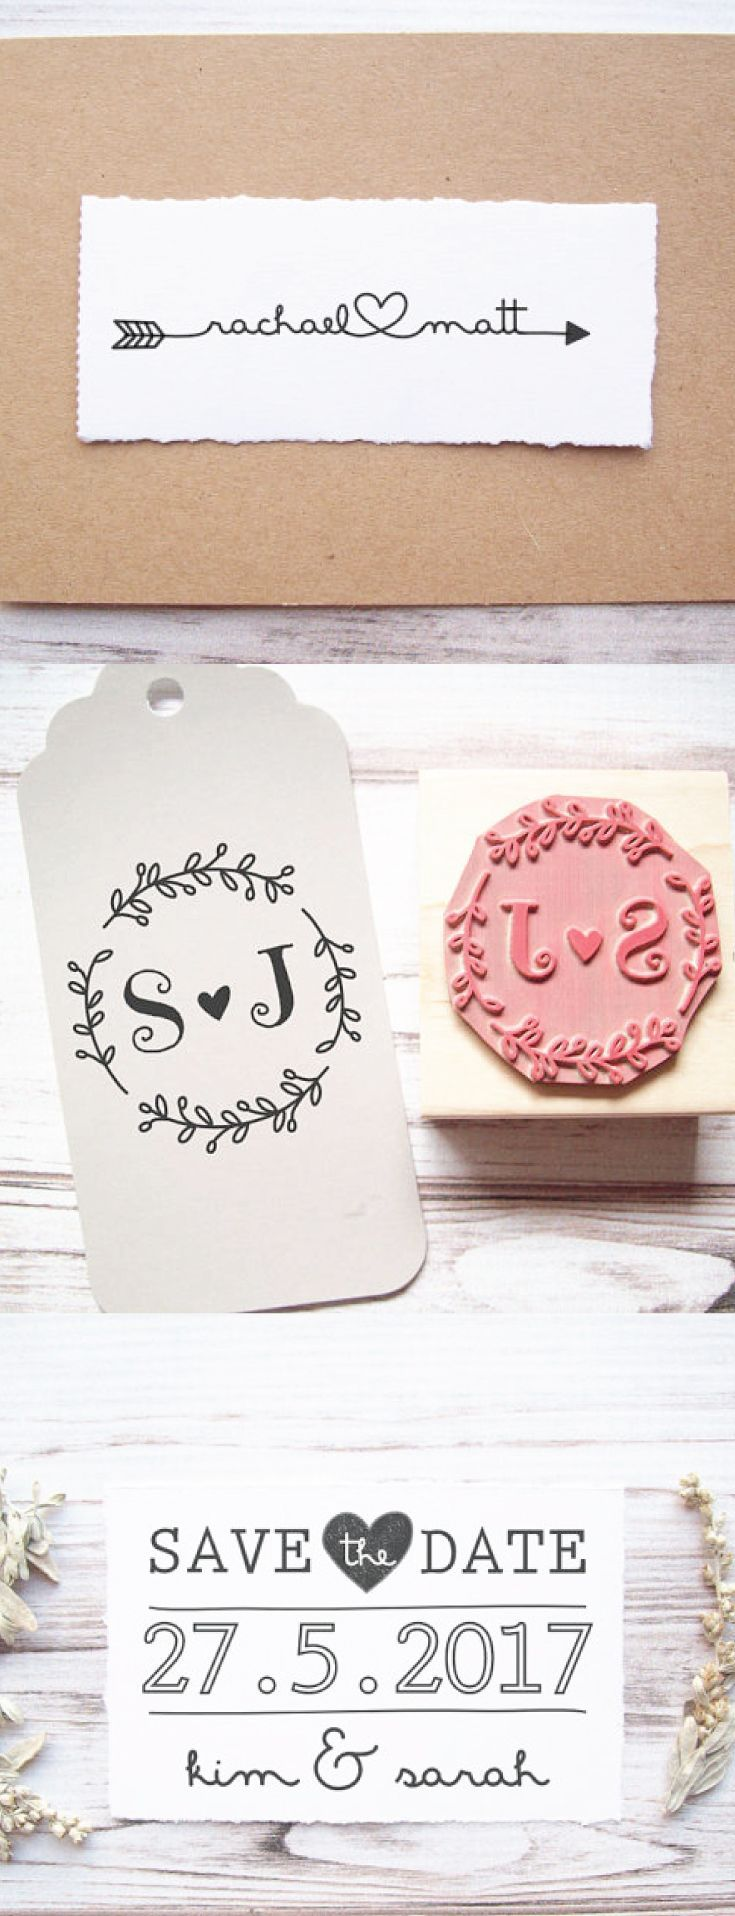 This is a great money saving idea personalized stamp for your